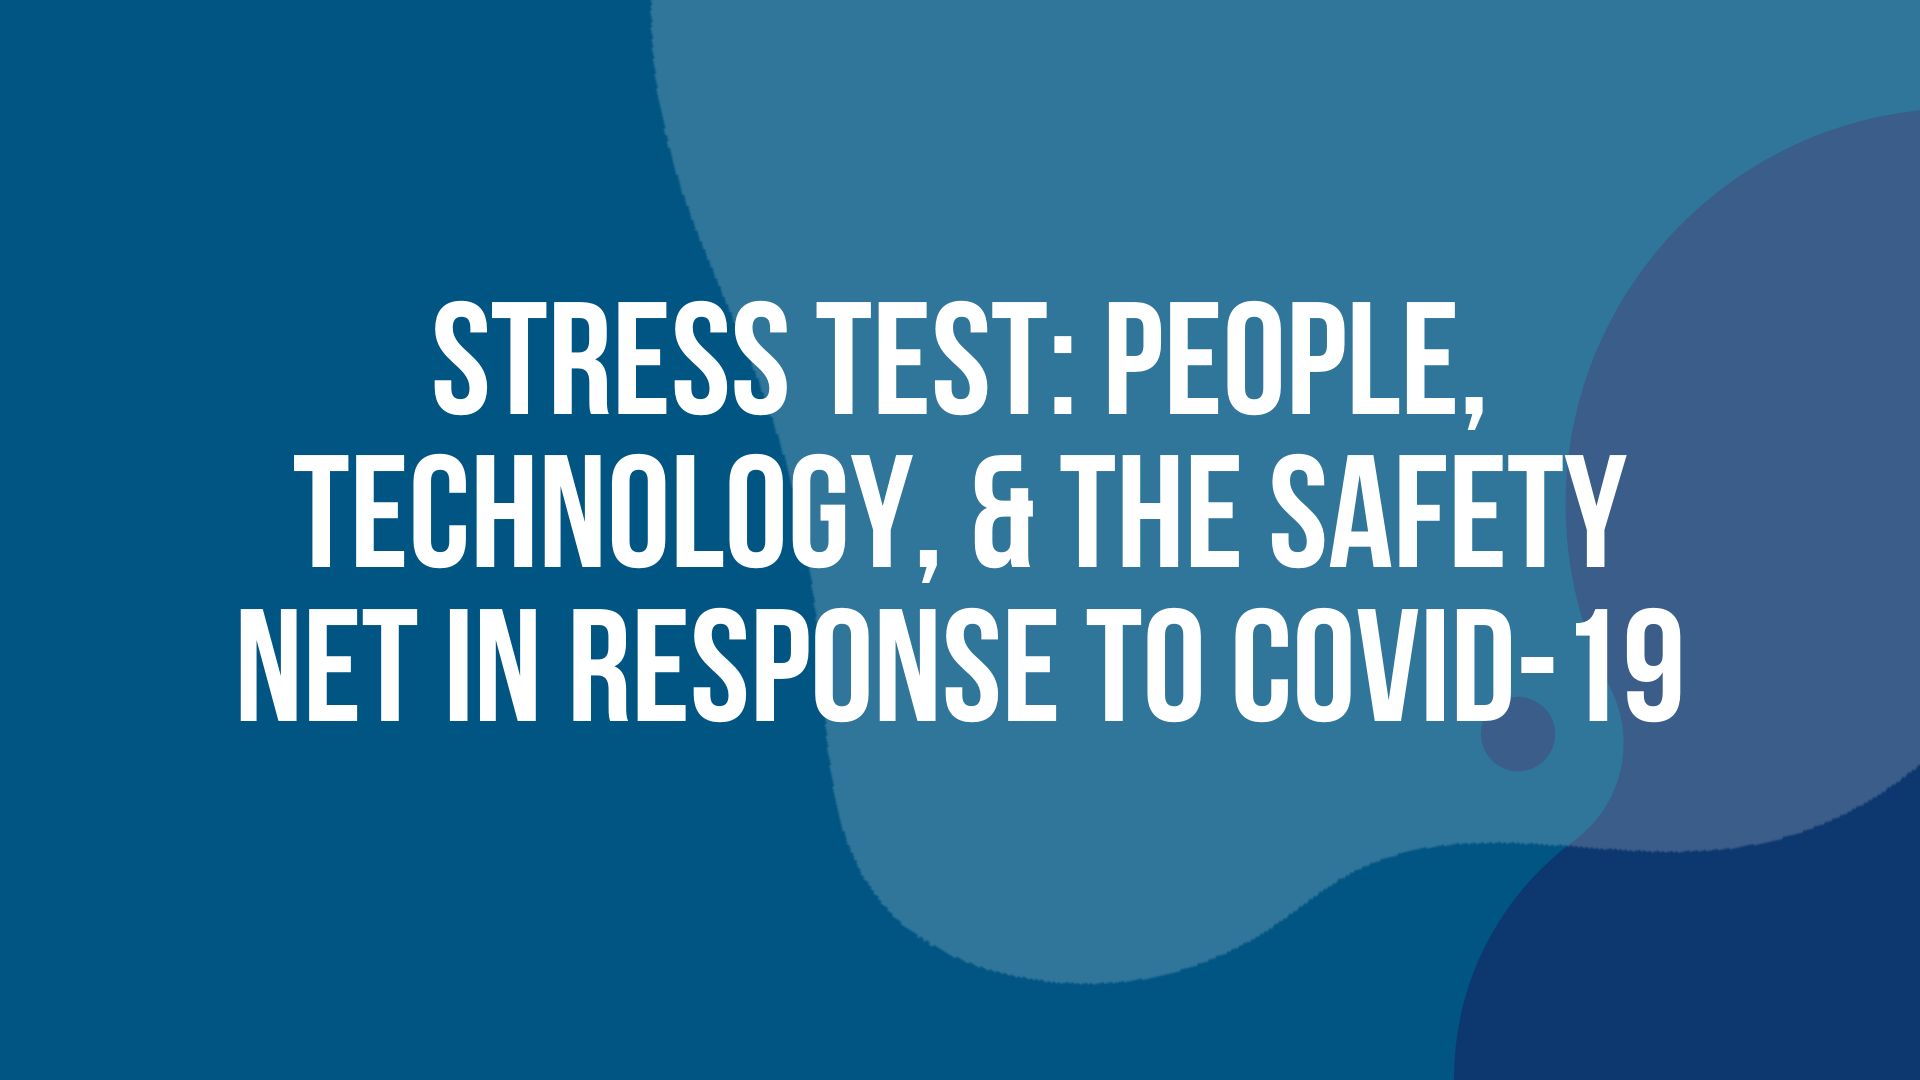 Stress Test: People, Technology, and the Safety Net In Response To Covid-19